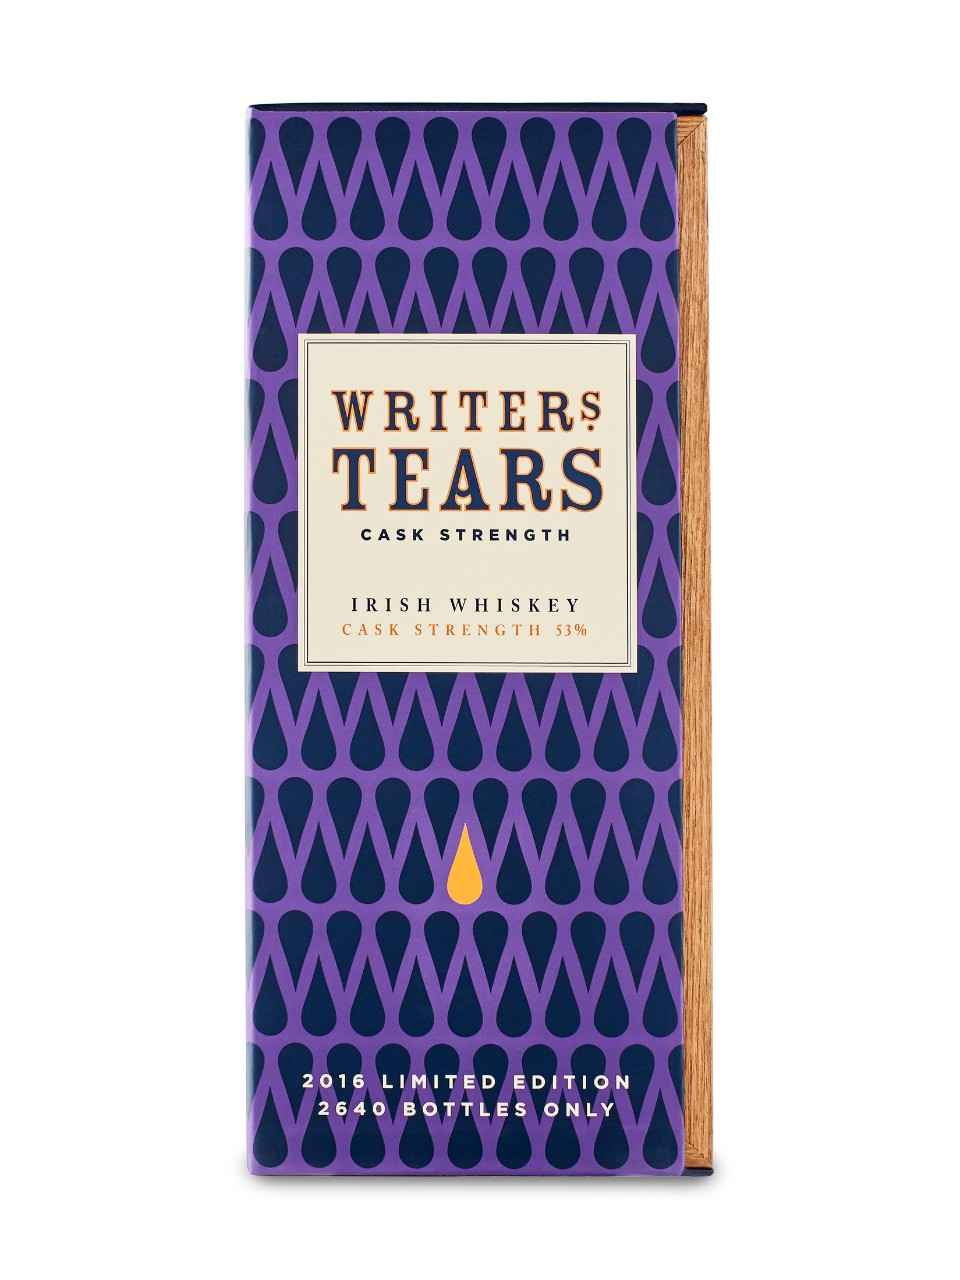 Writers Tears Limited Cask Strength Irish Whiskey                                                                               -A